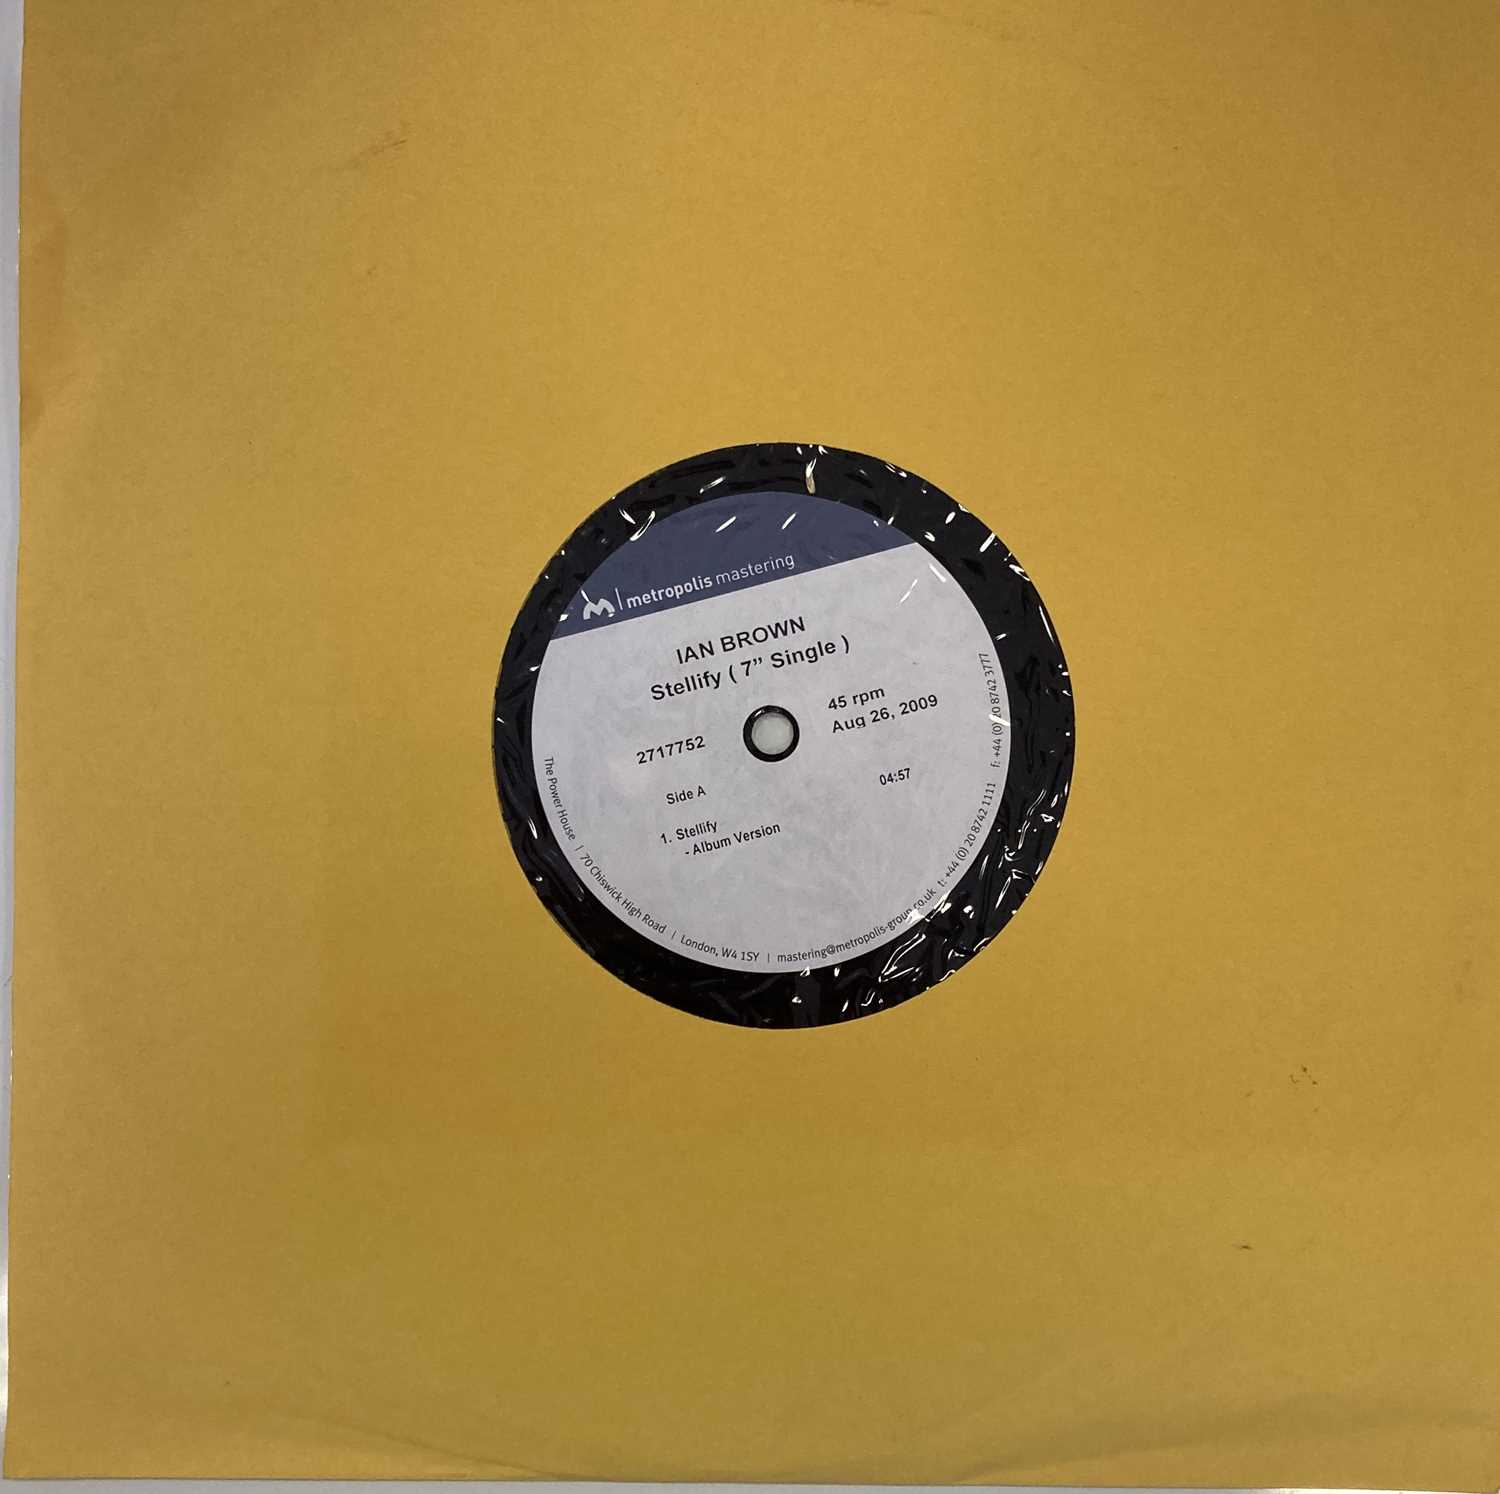 "IAN BROWN - STELLIFY 7"" ACETATE RECORDING (2717752)"